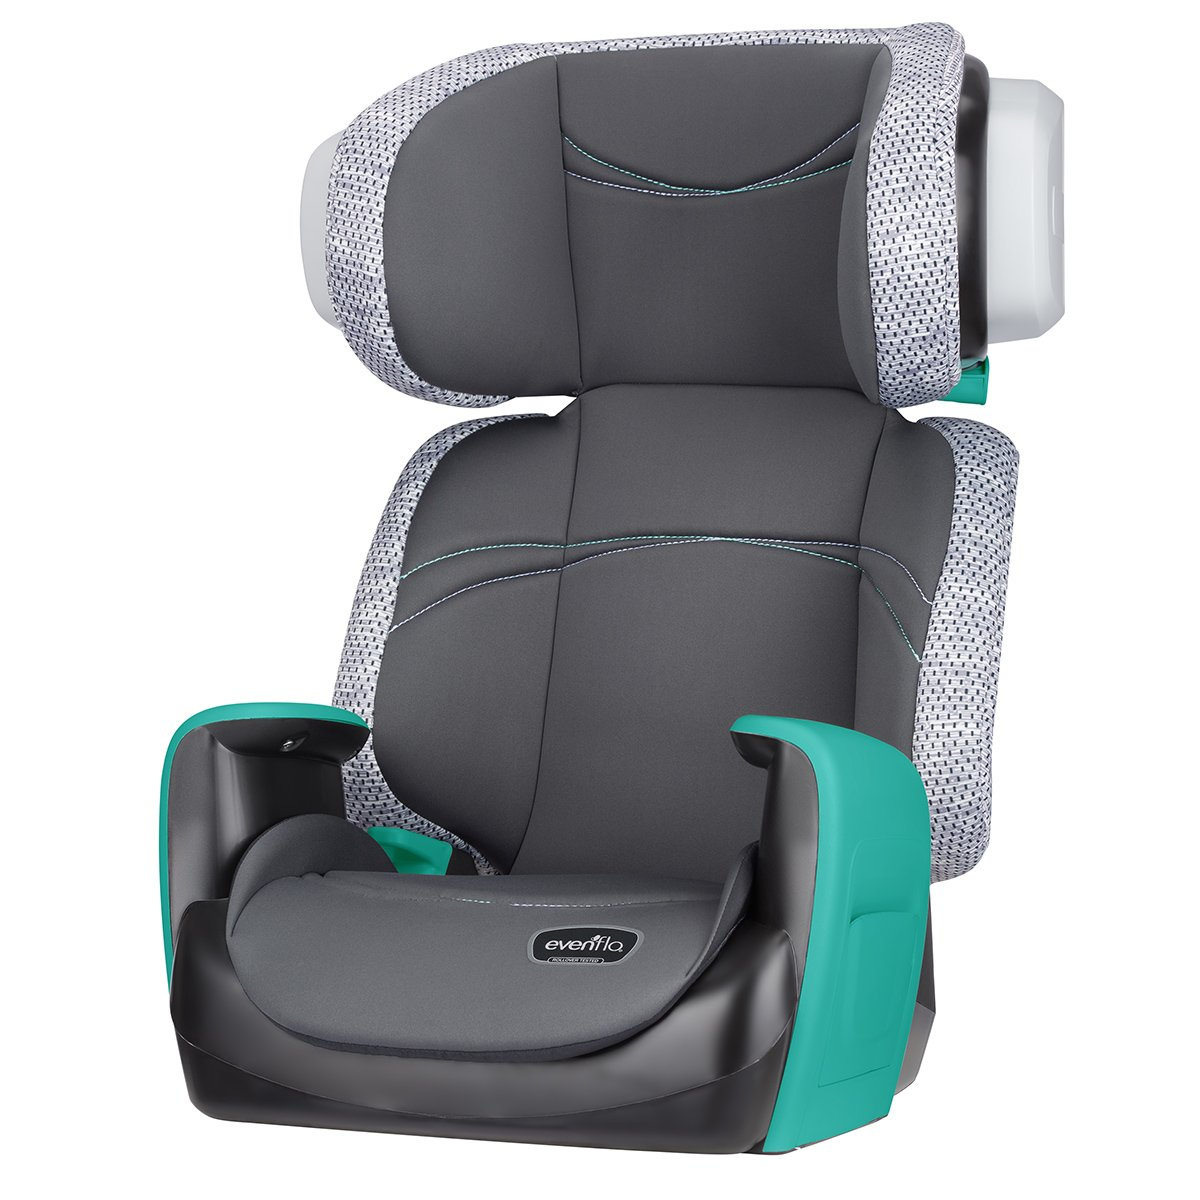 Evenflo Spectrum 2-in-1 Booster Seat High-Back Booster No-Back Booster Advanced Compression Technology Ergonomic Seat Base Side-Impact Tested Machine Washable Foggy Gray